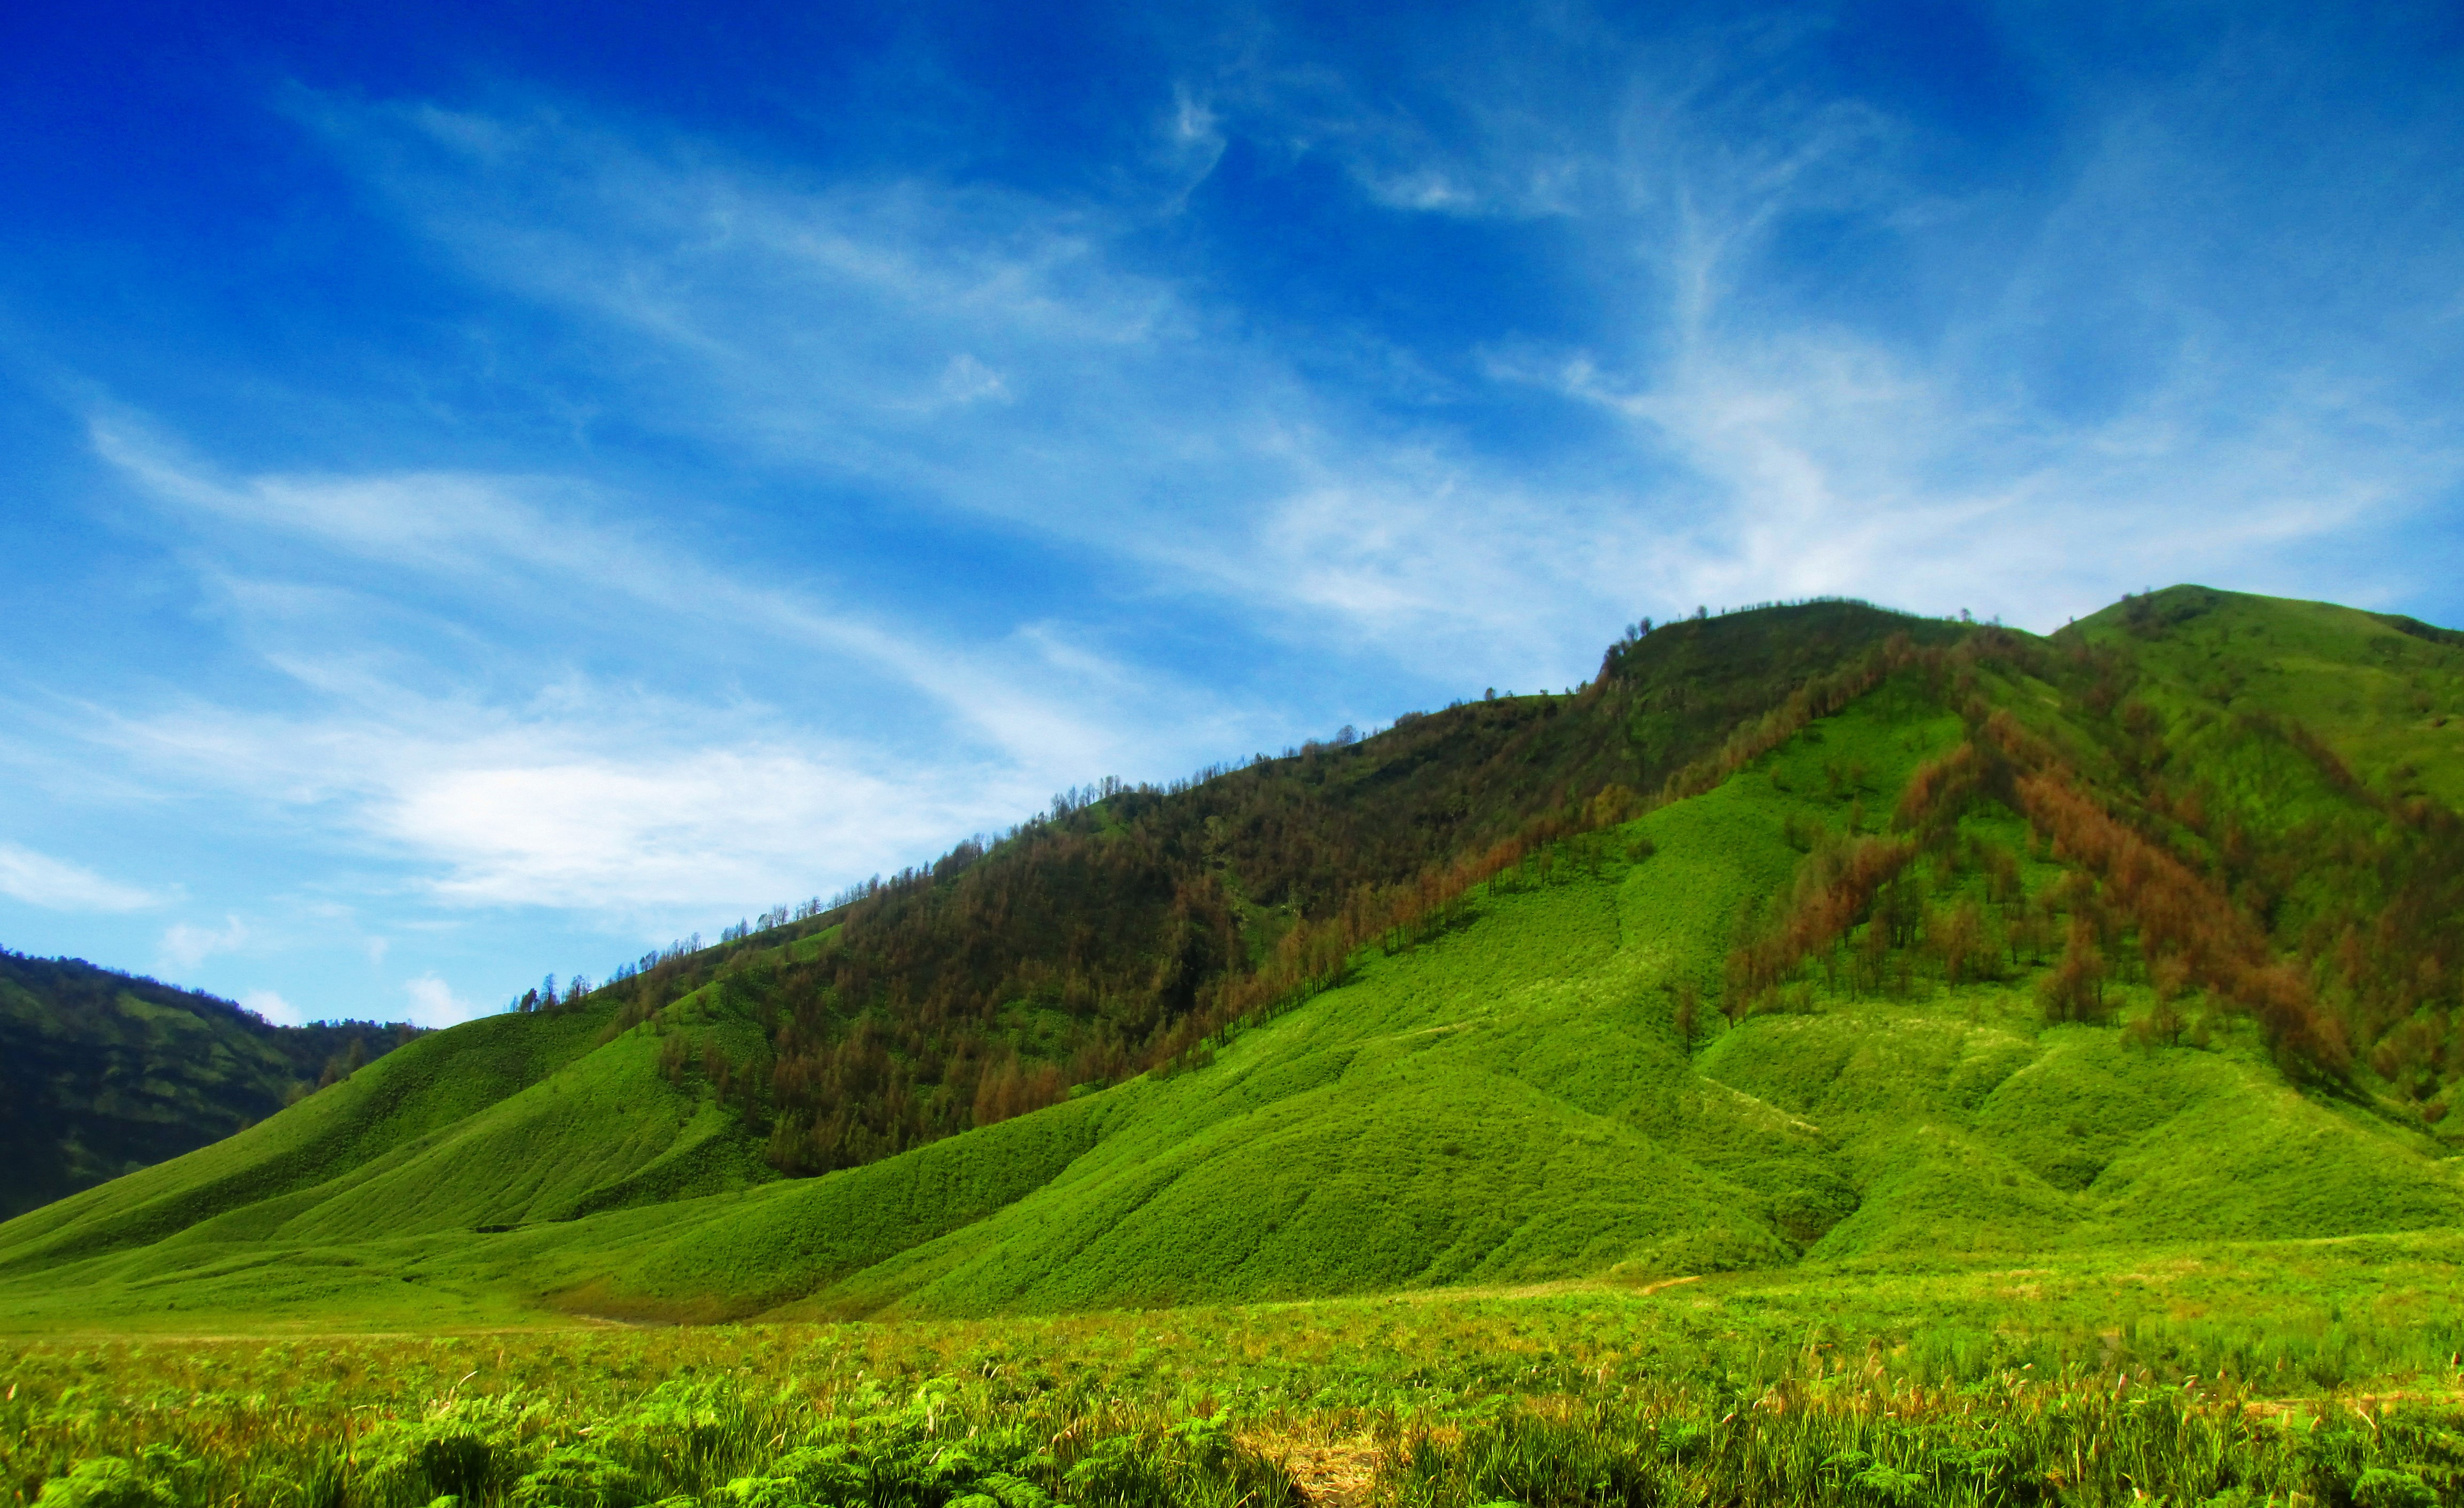 bromo tour - Madakaripura Bromo Private Tour - Explore Indonesia, YOEXPLORE